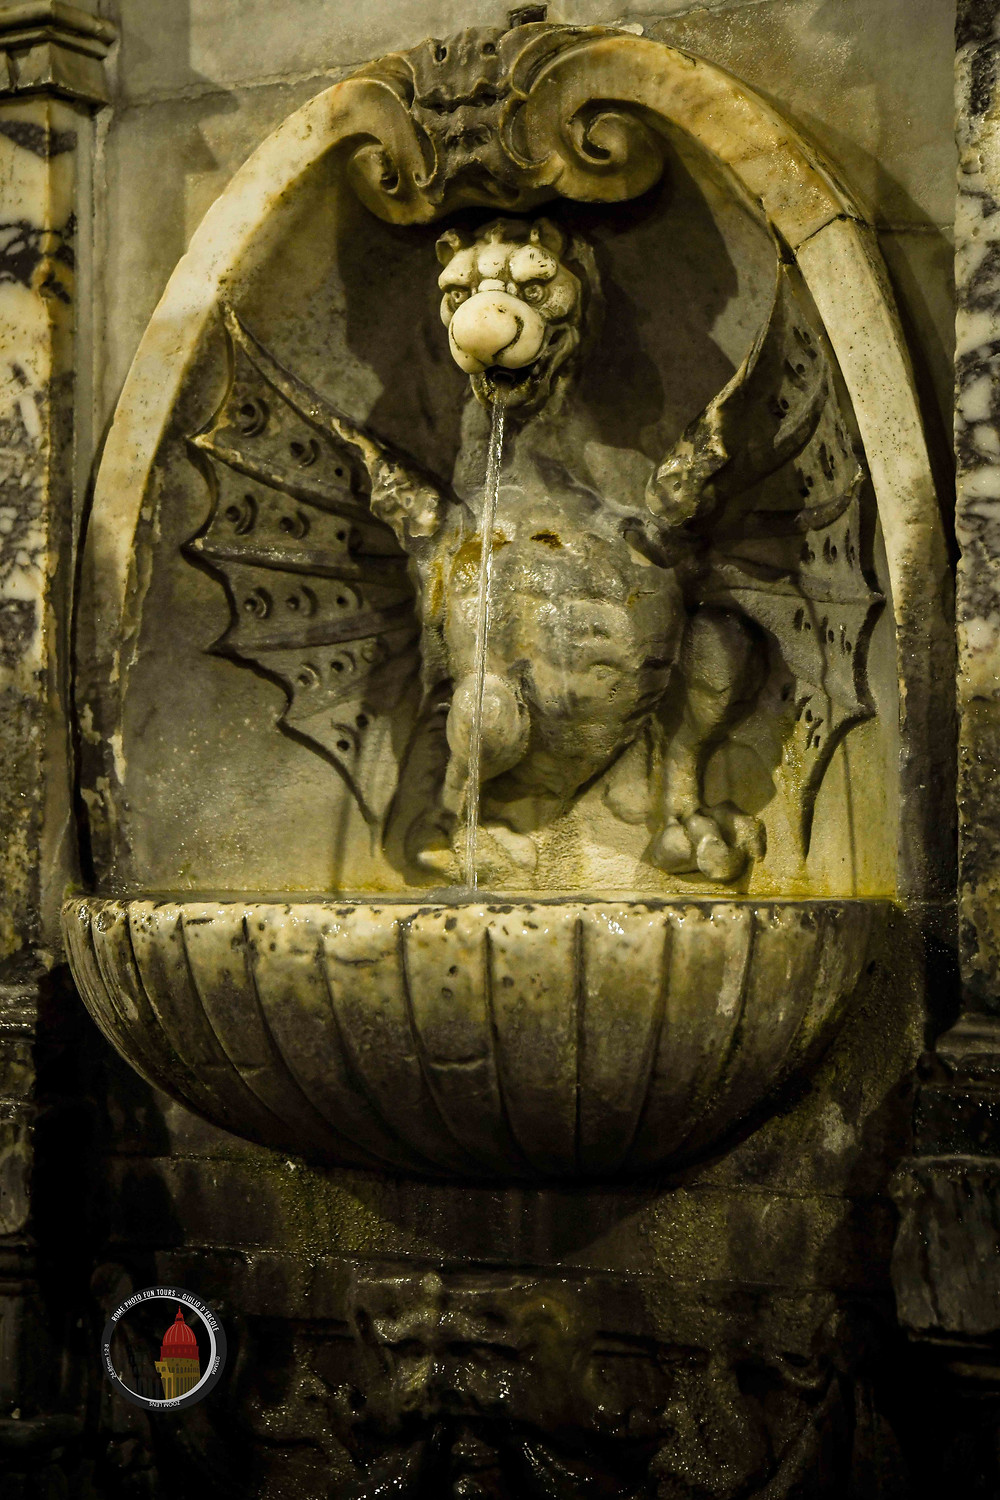 Rome will surprise you with its Angels and Demons art and details. Come to photograph them with Giulio D'Ercole's photo tours and workshops